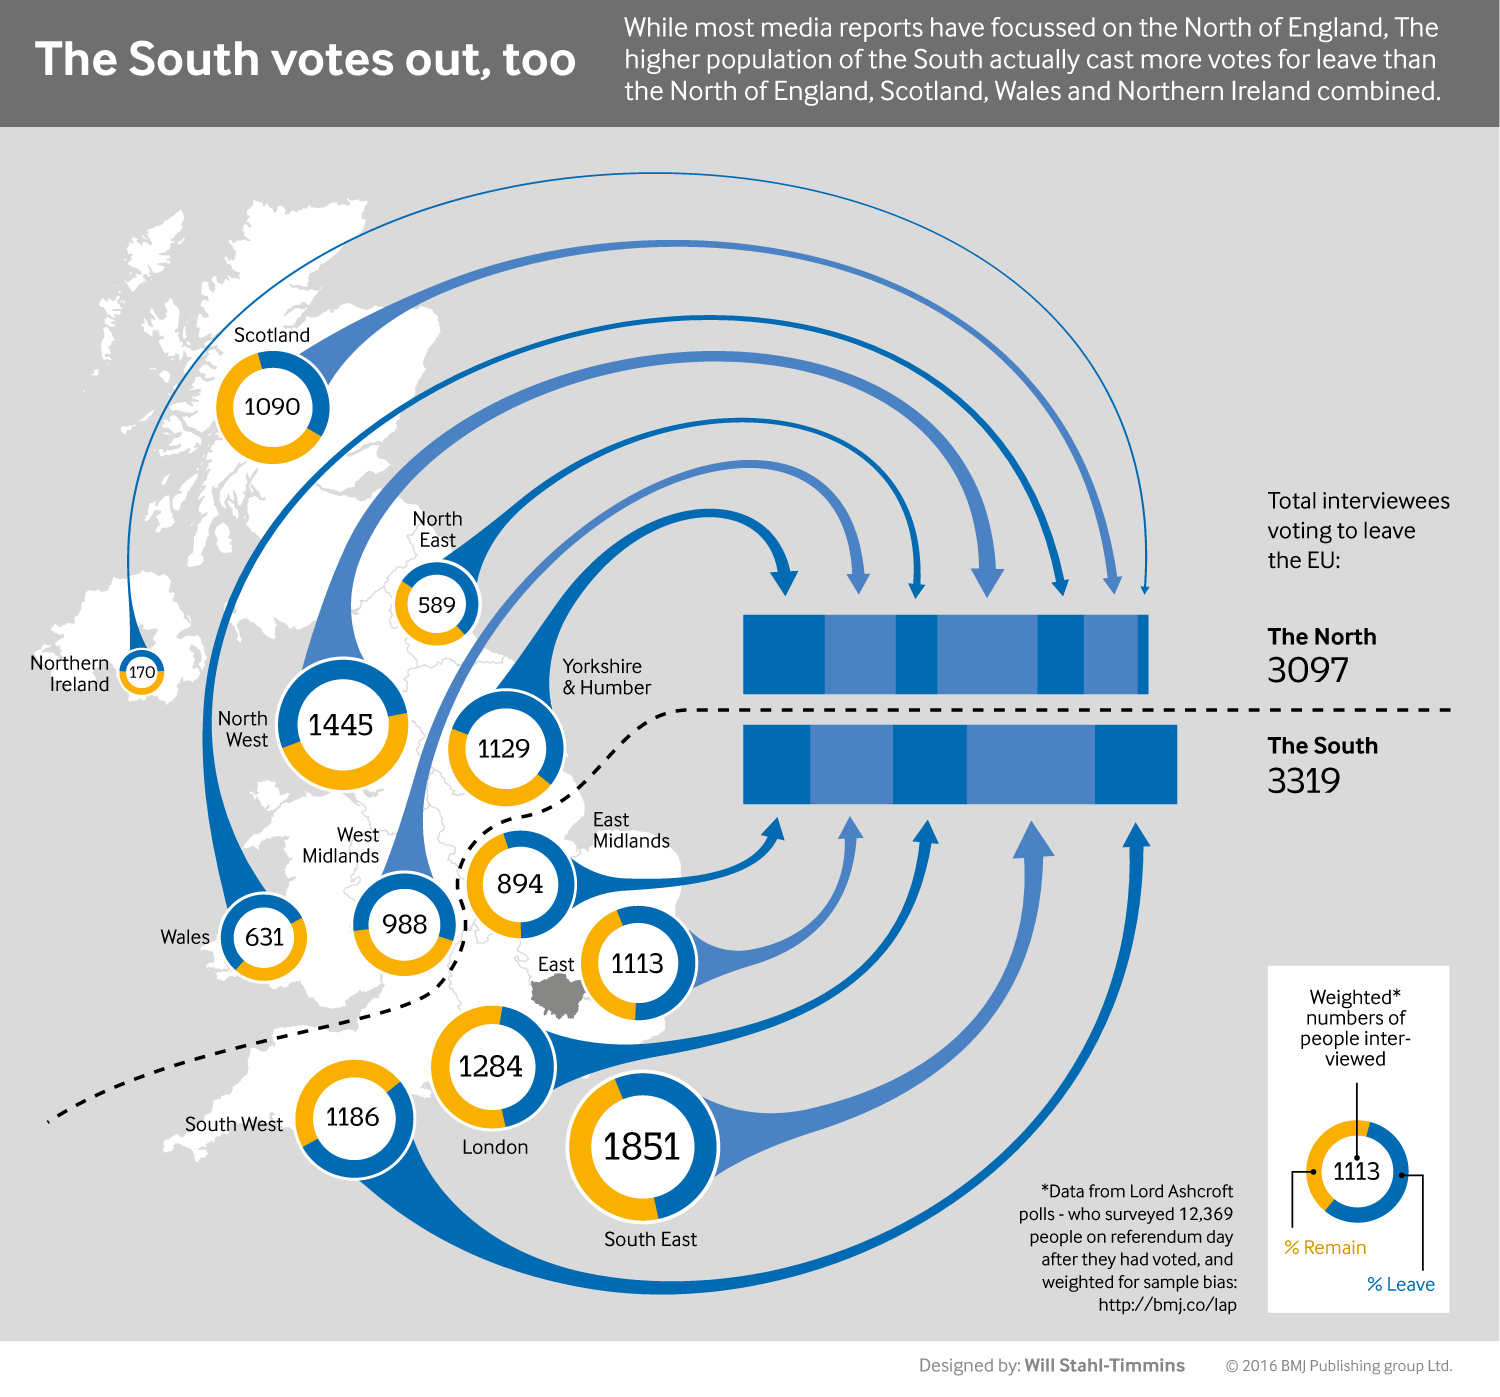 infographic, showing that more people from the south of the UK voted to leave the European Union